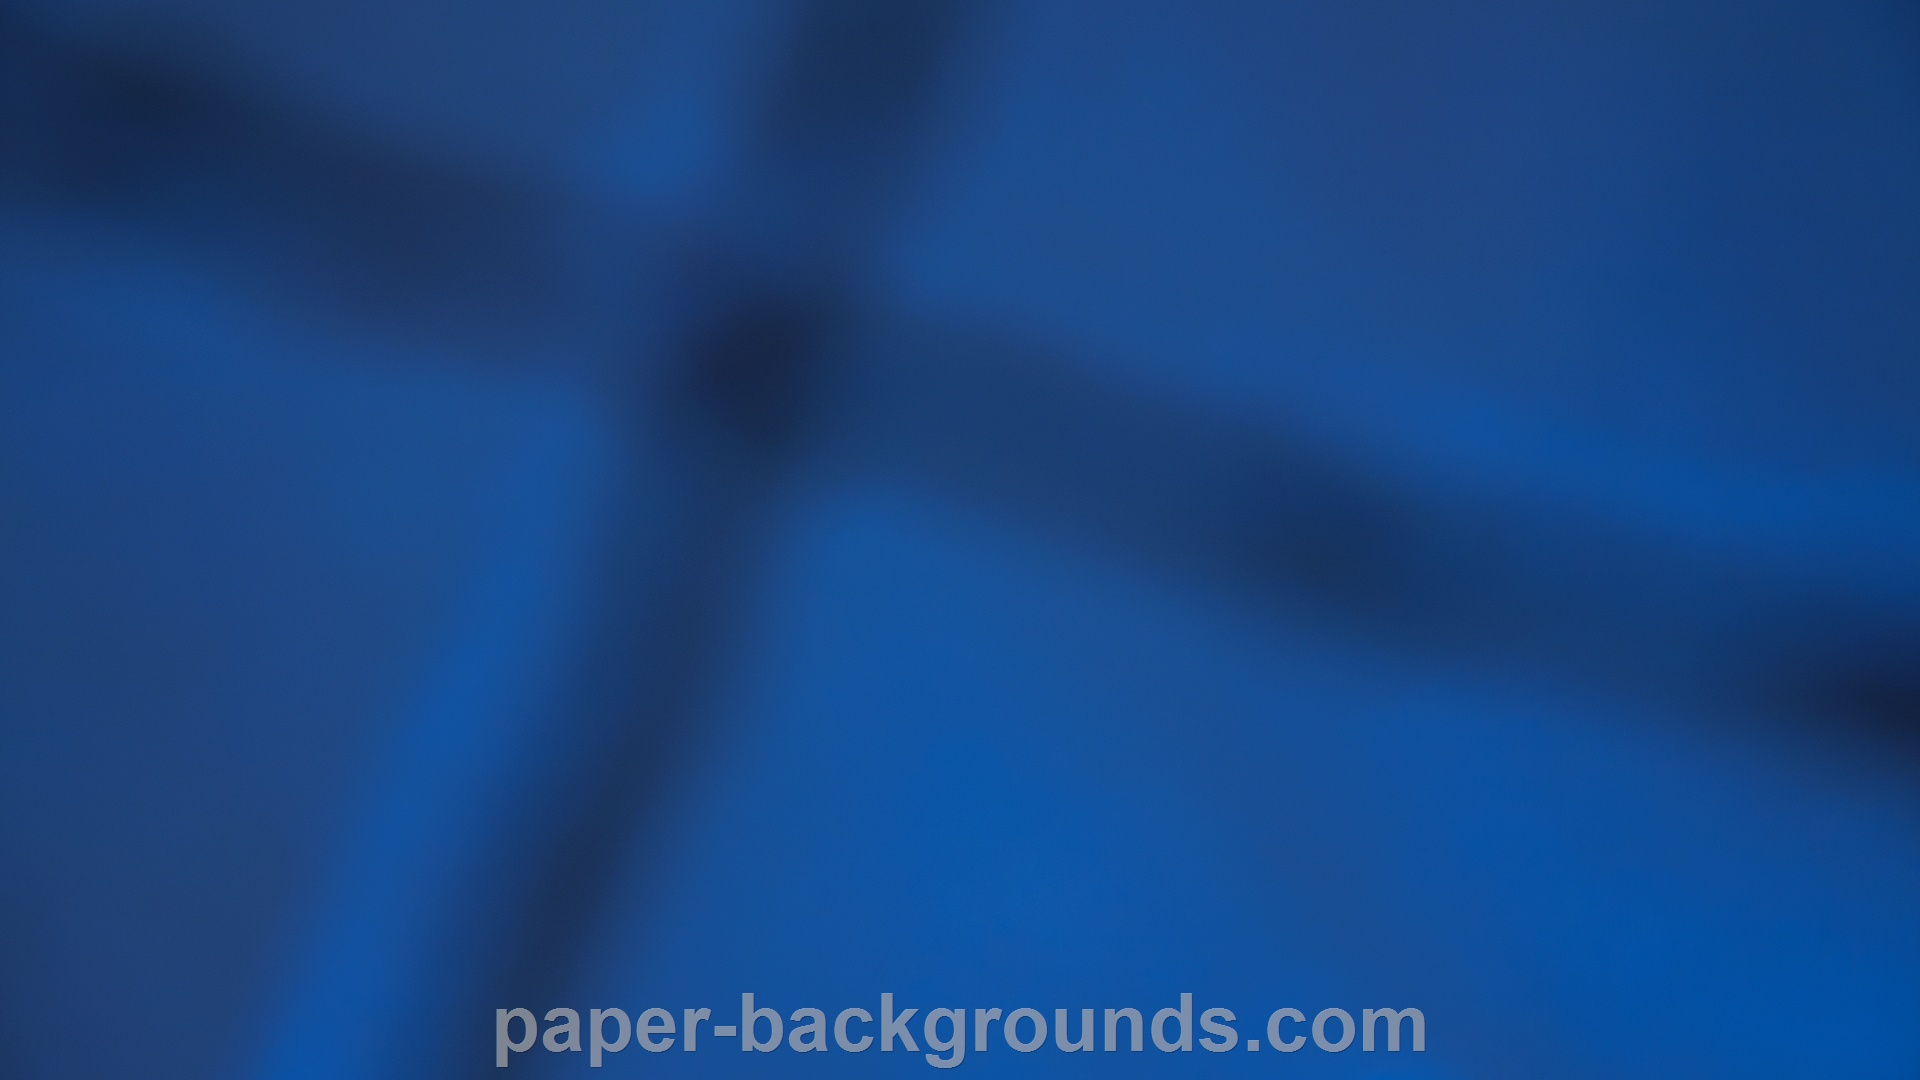 blue background abstract hd Paper Backgrounds 1920x1080